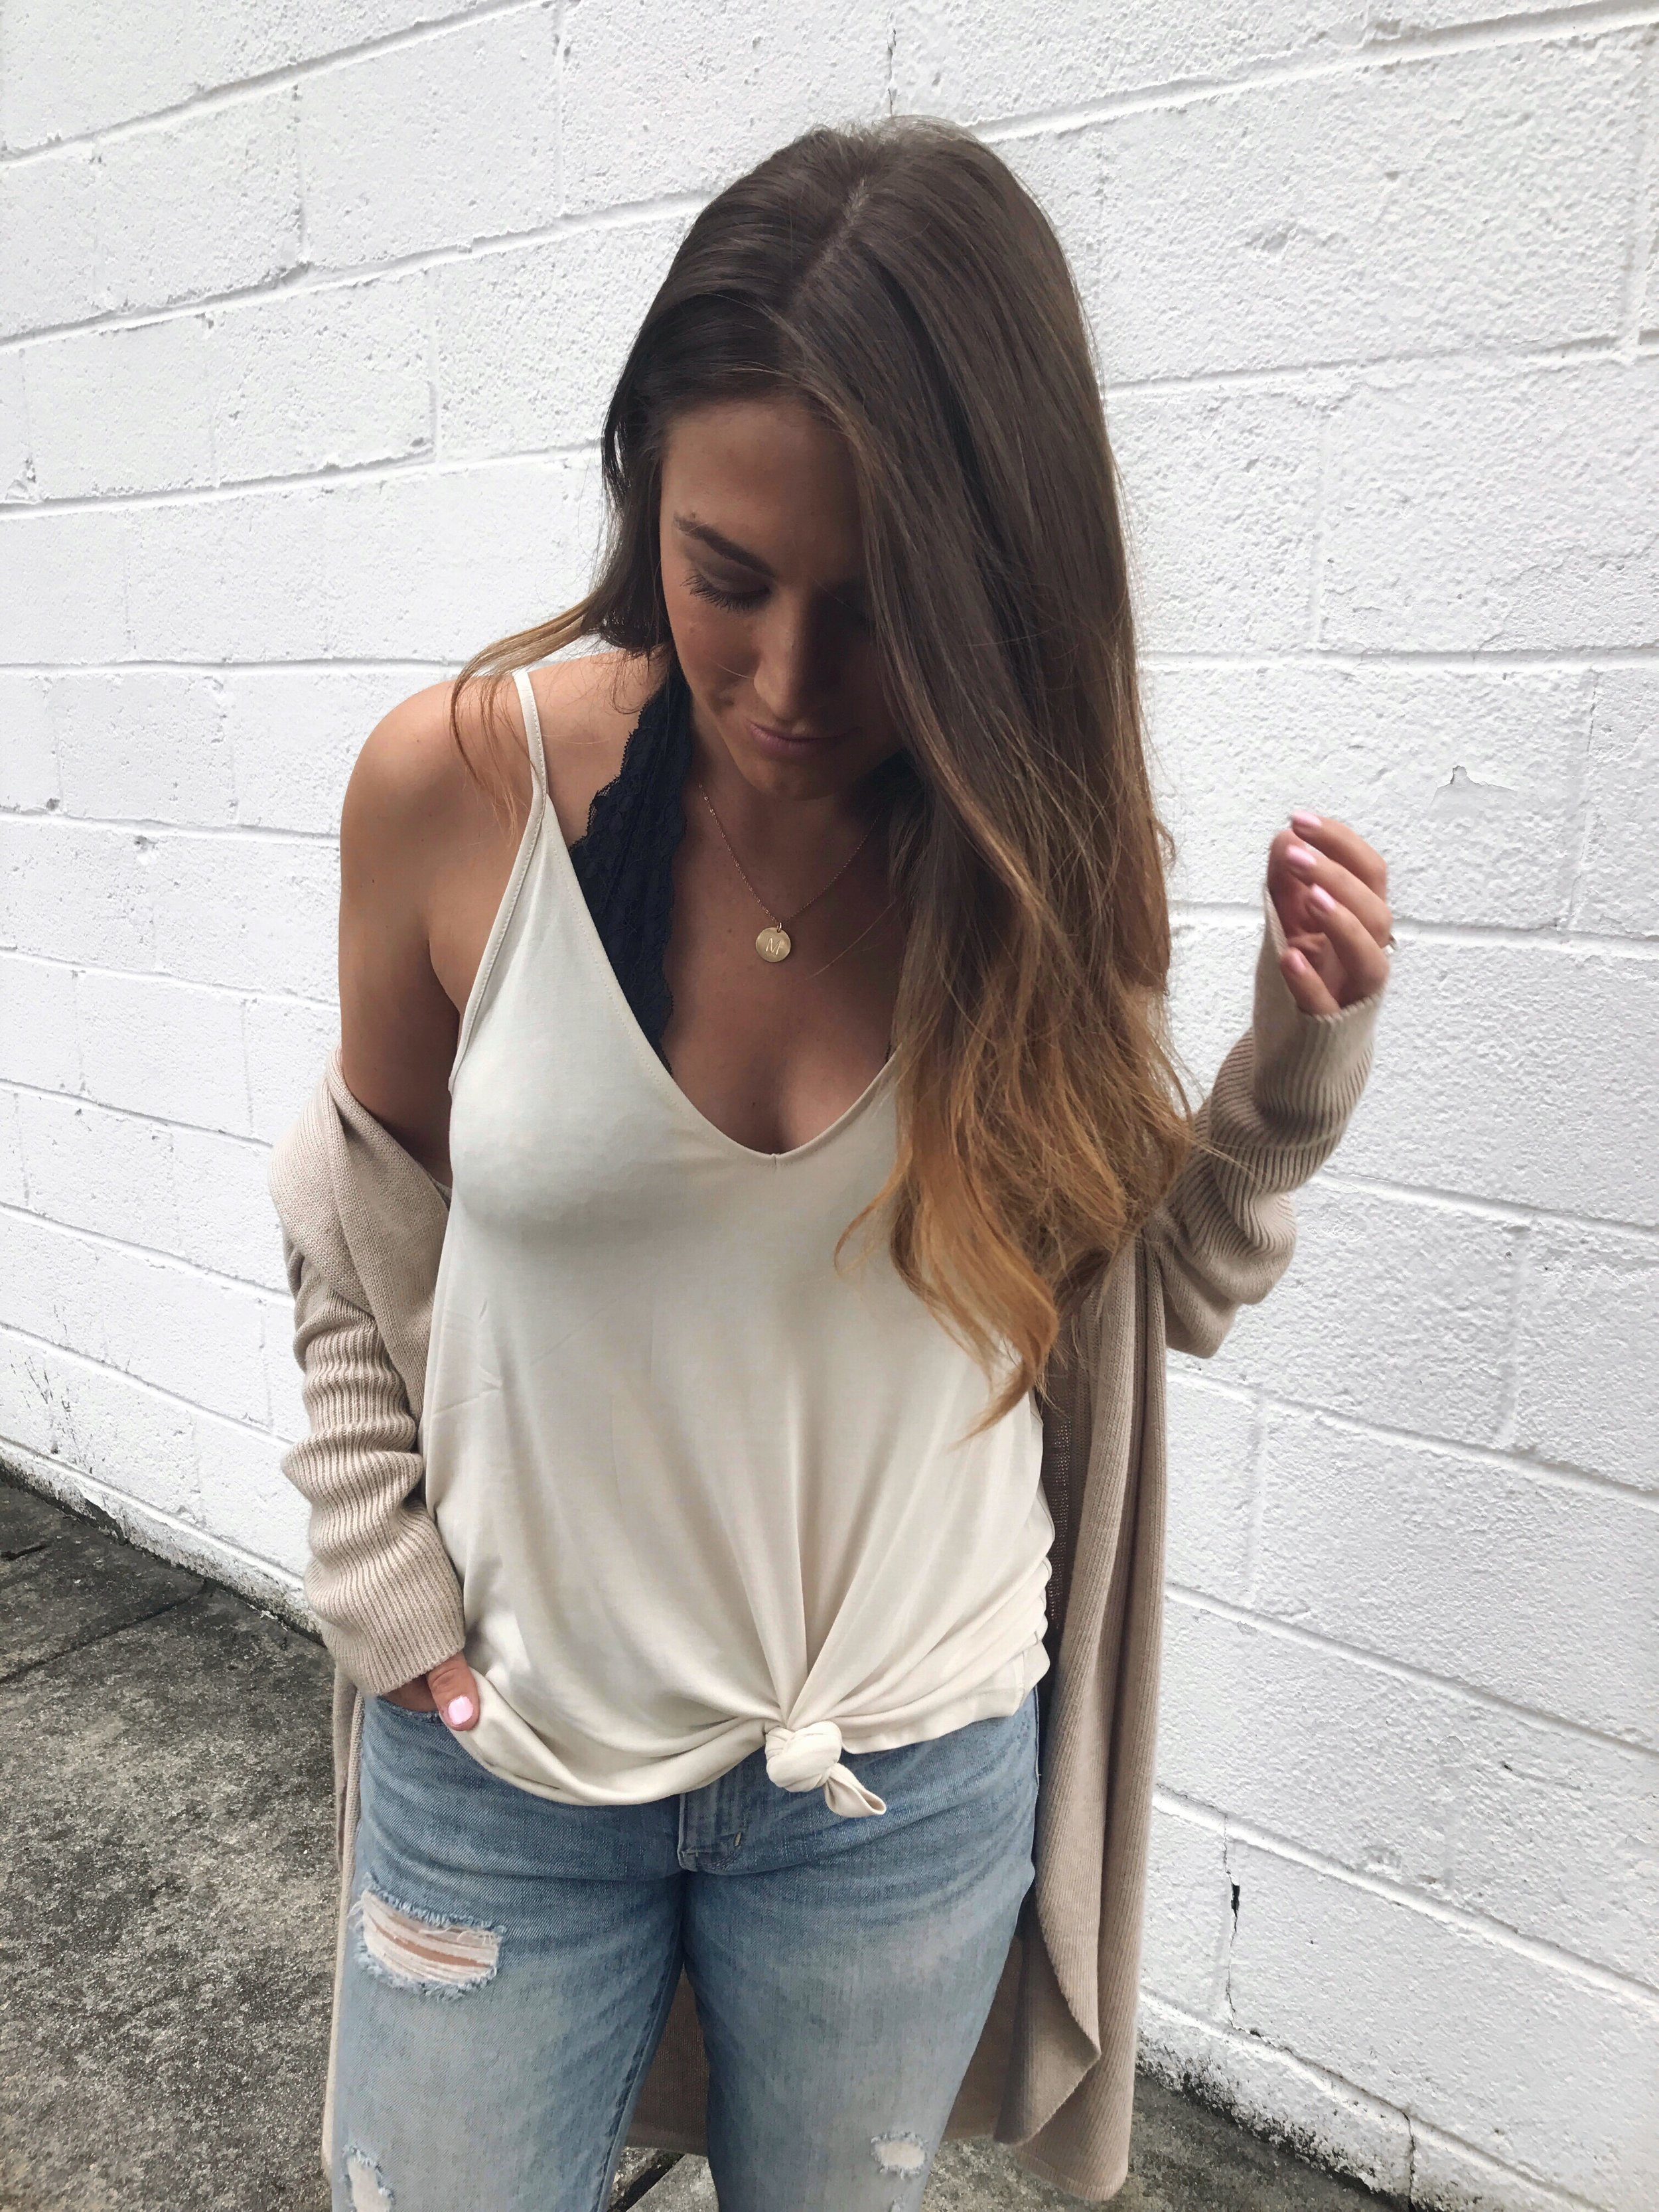 Leith cardigan / knotted tank top / distressed denim / fall transition outfit idea / outfit inspiration